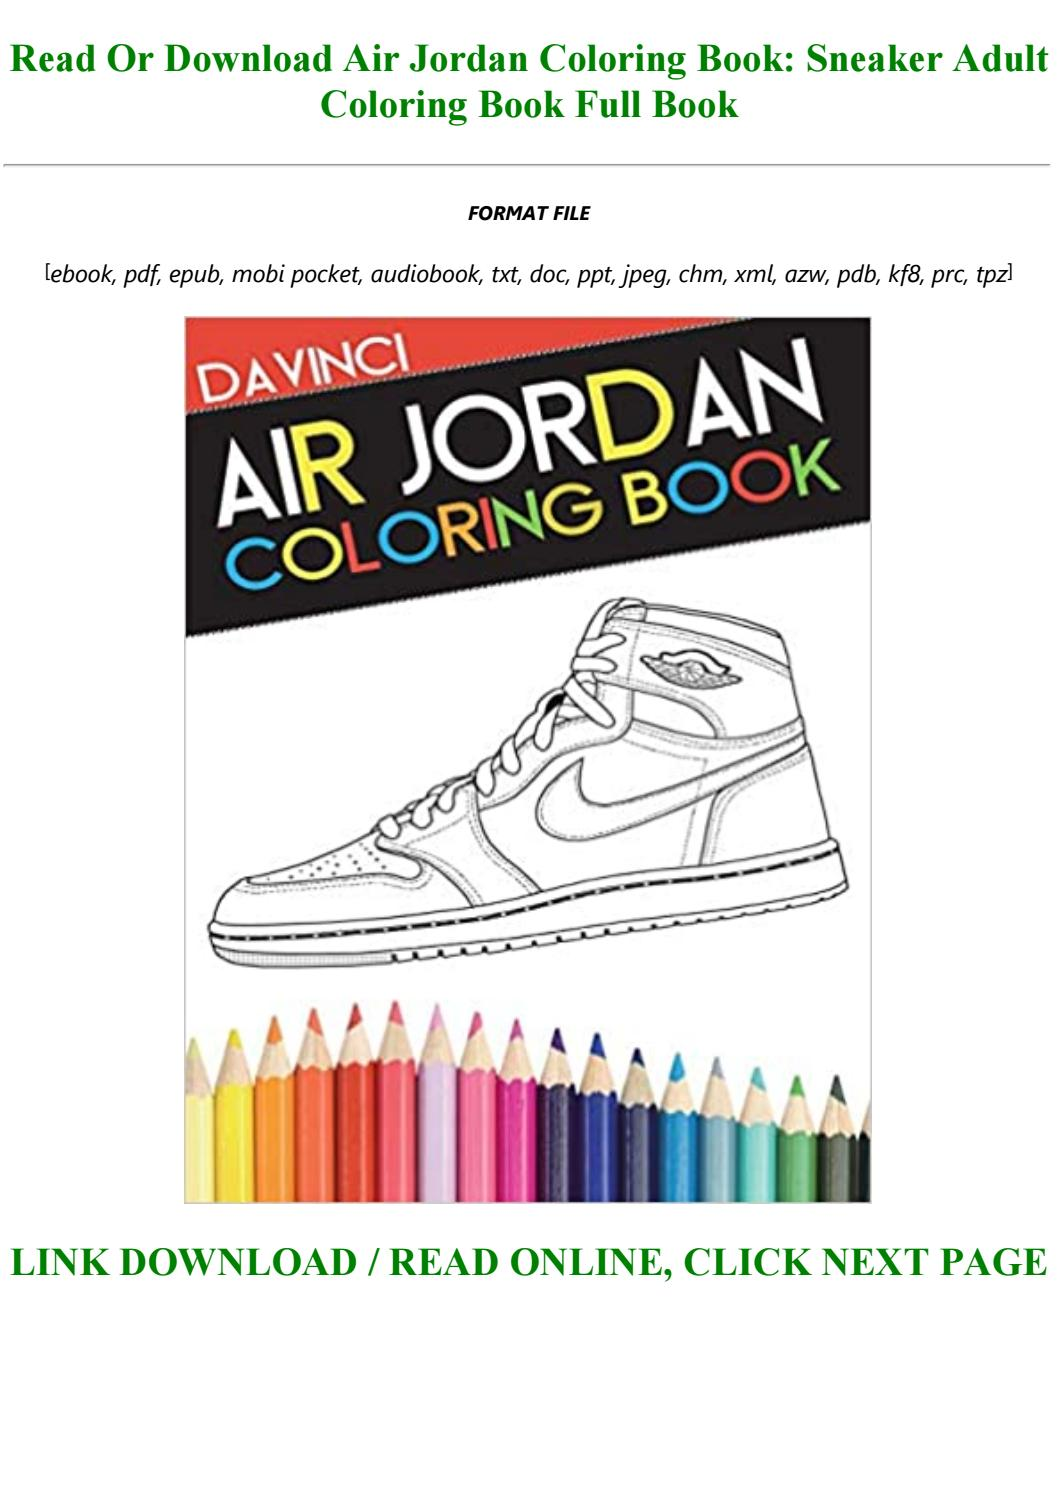 - Air Jordan Coloring Book: Sneaker Adult Coloring Book By